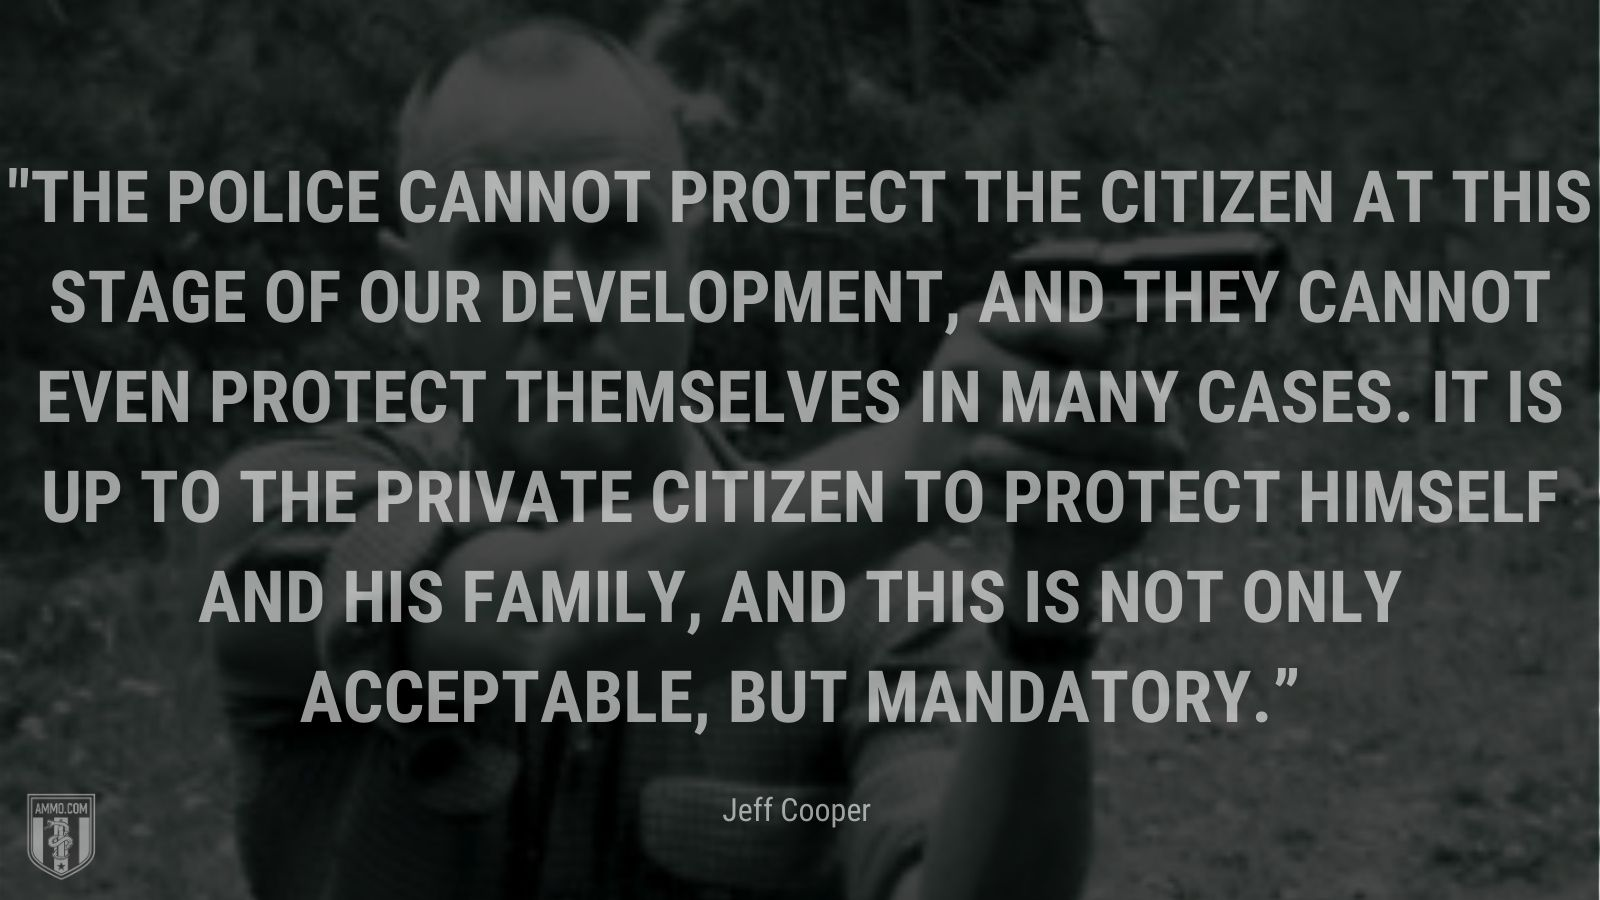 """""""The police cannot protect the citizen at this stage of our development, and they cannot even protect themselves in many cases. It is up to the private citizen to protect himself and his family, and this is not only acceptable, but mandatory."""" - Jeff Cooper"""